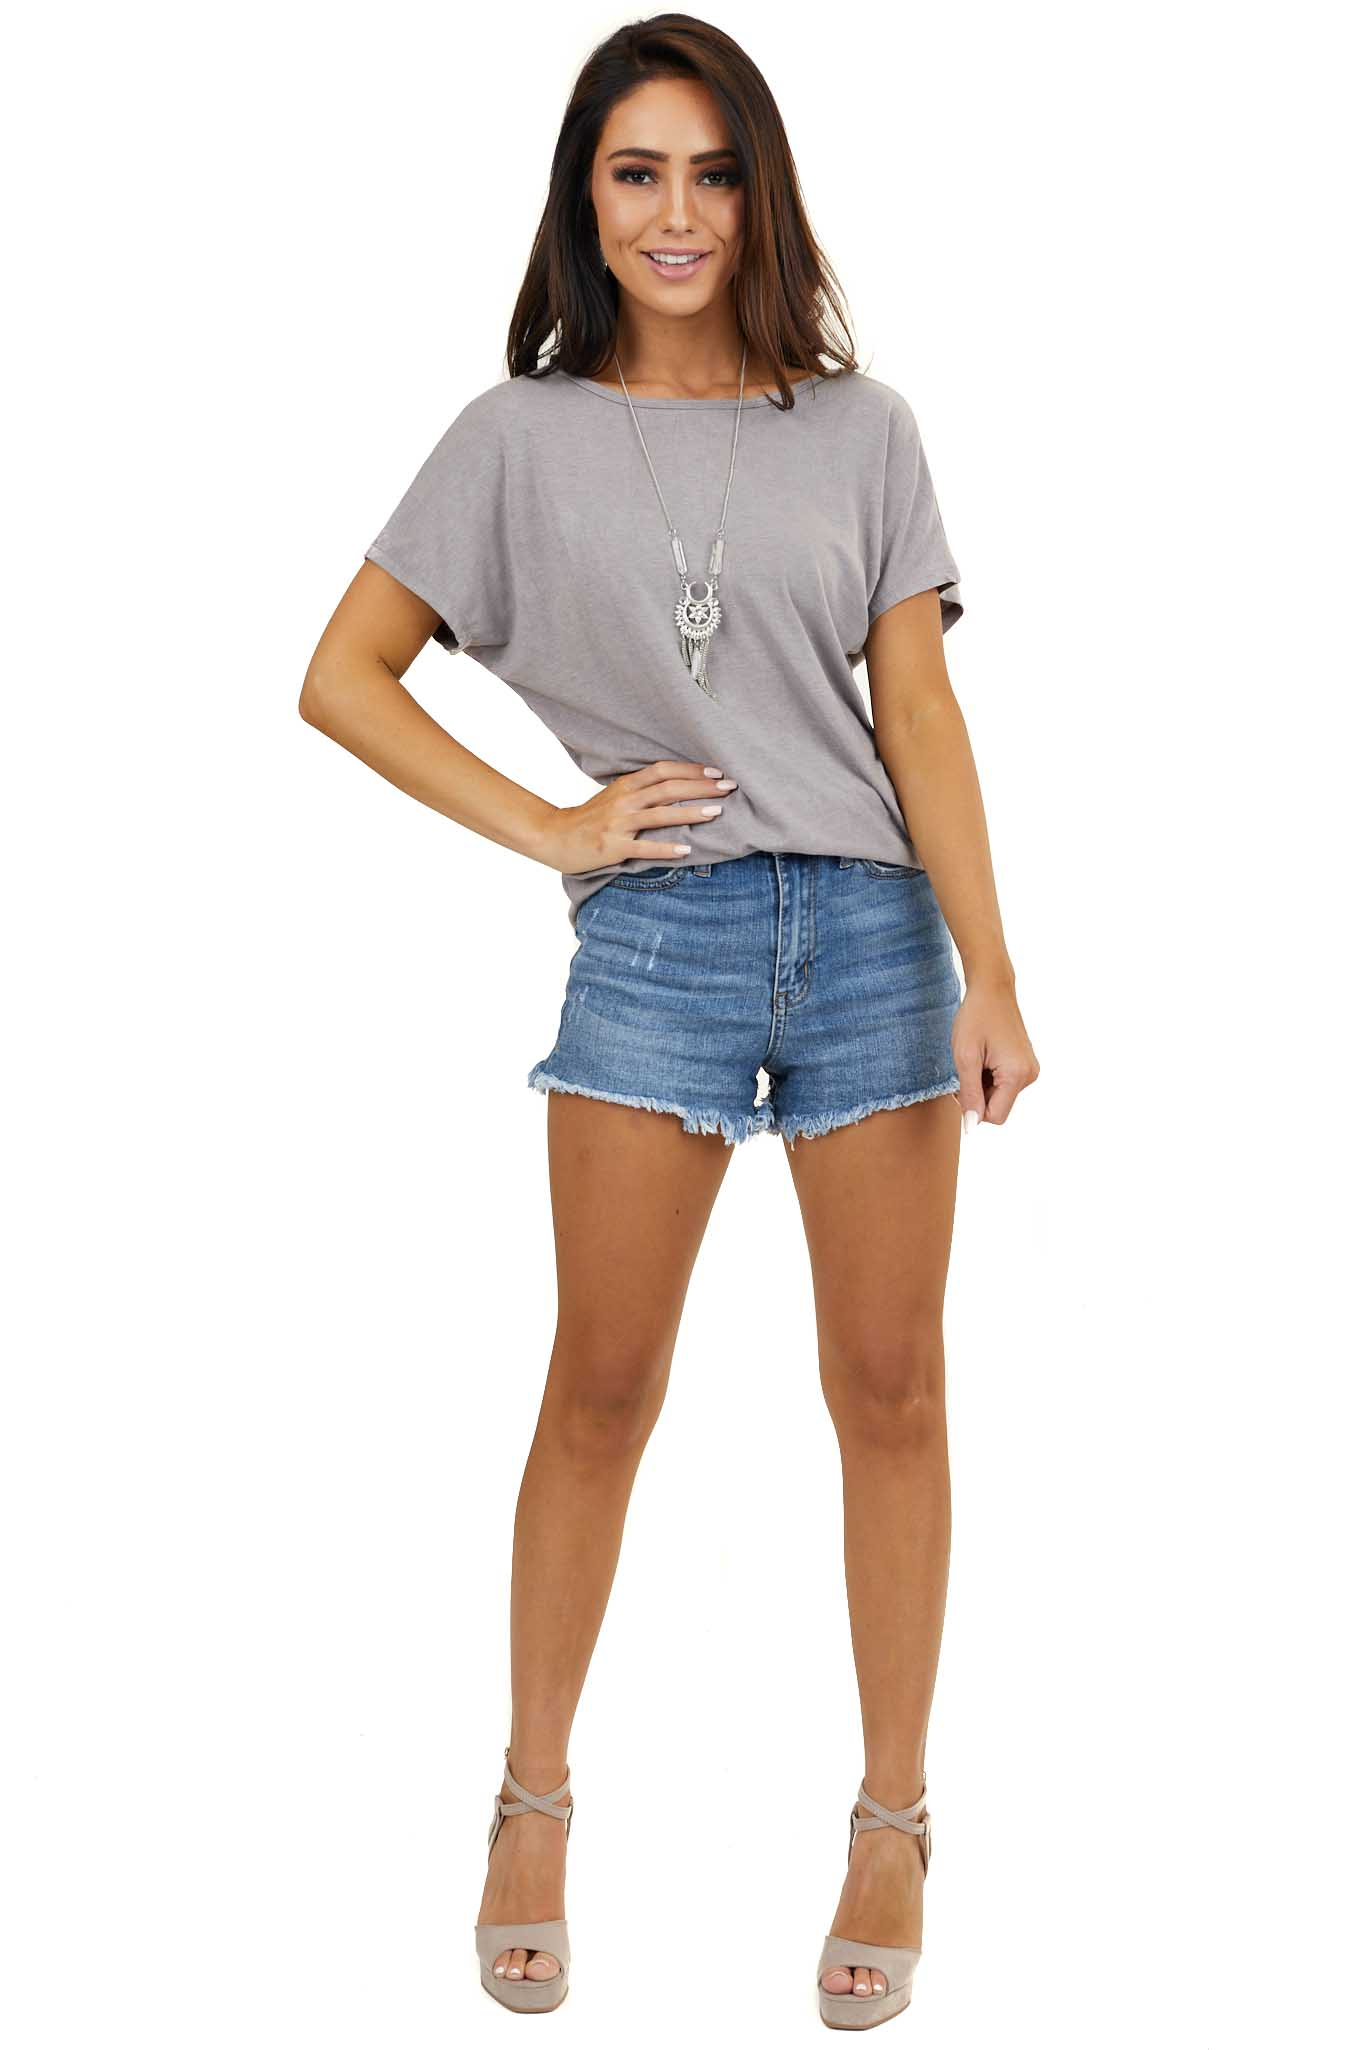 Taupe Short Sleeve Knit Top with Twisted Keyhole Back Detail